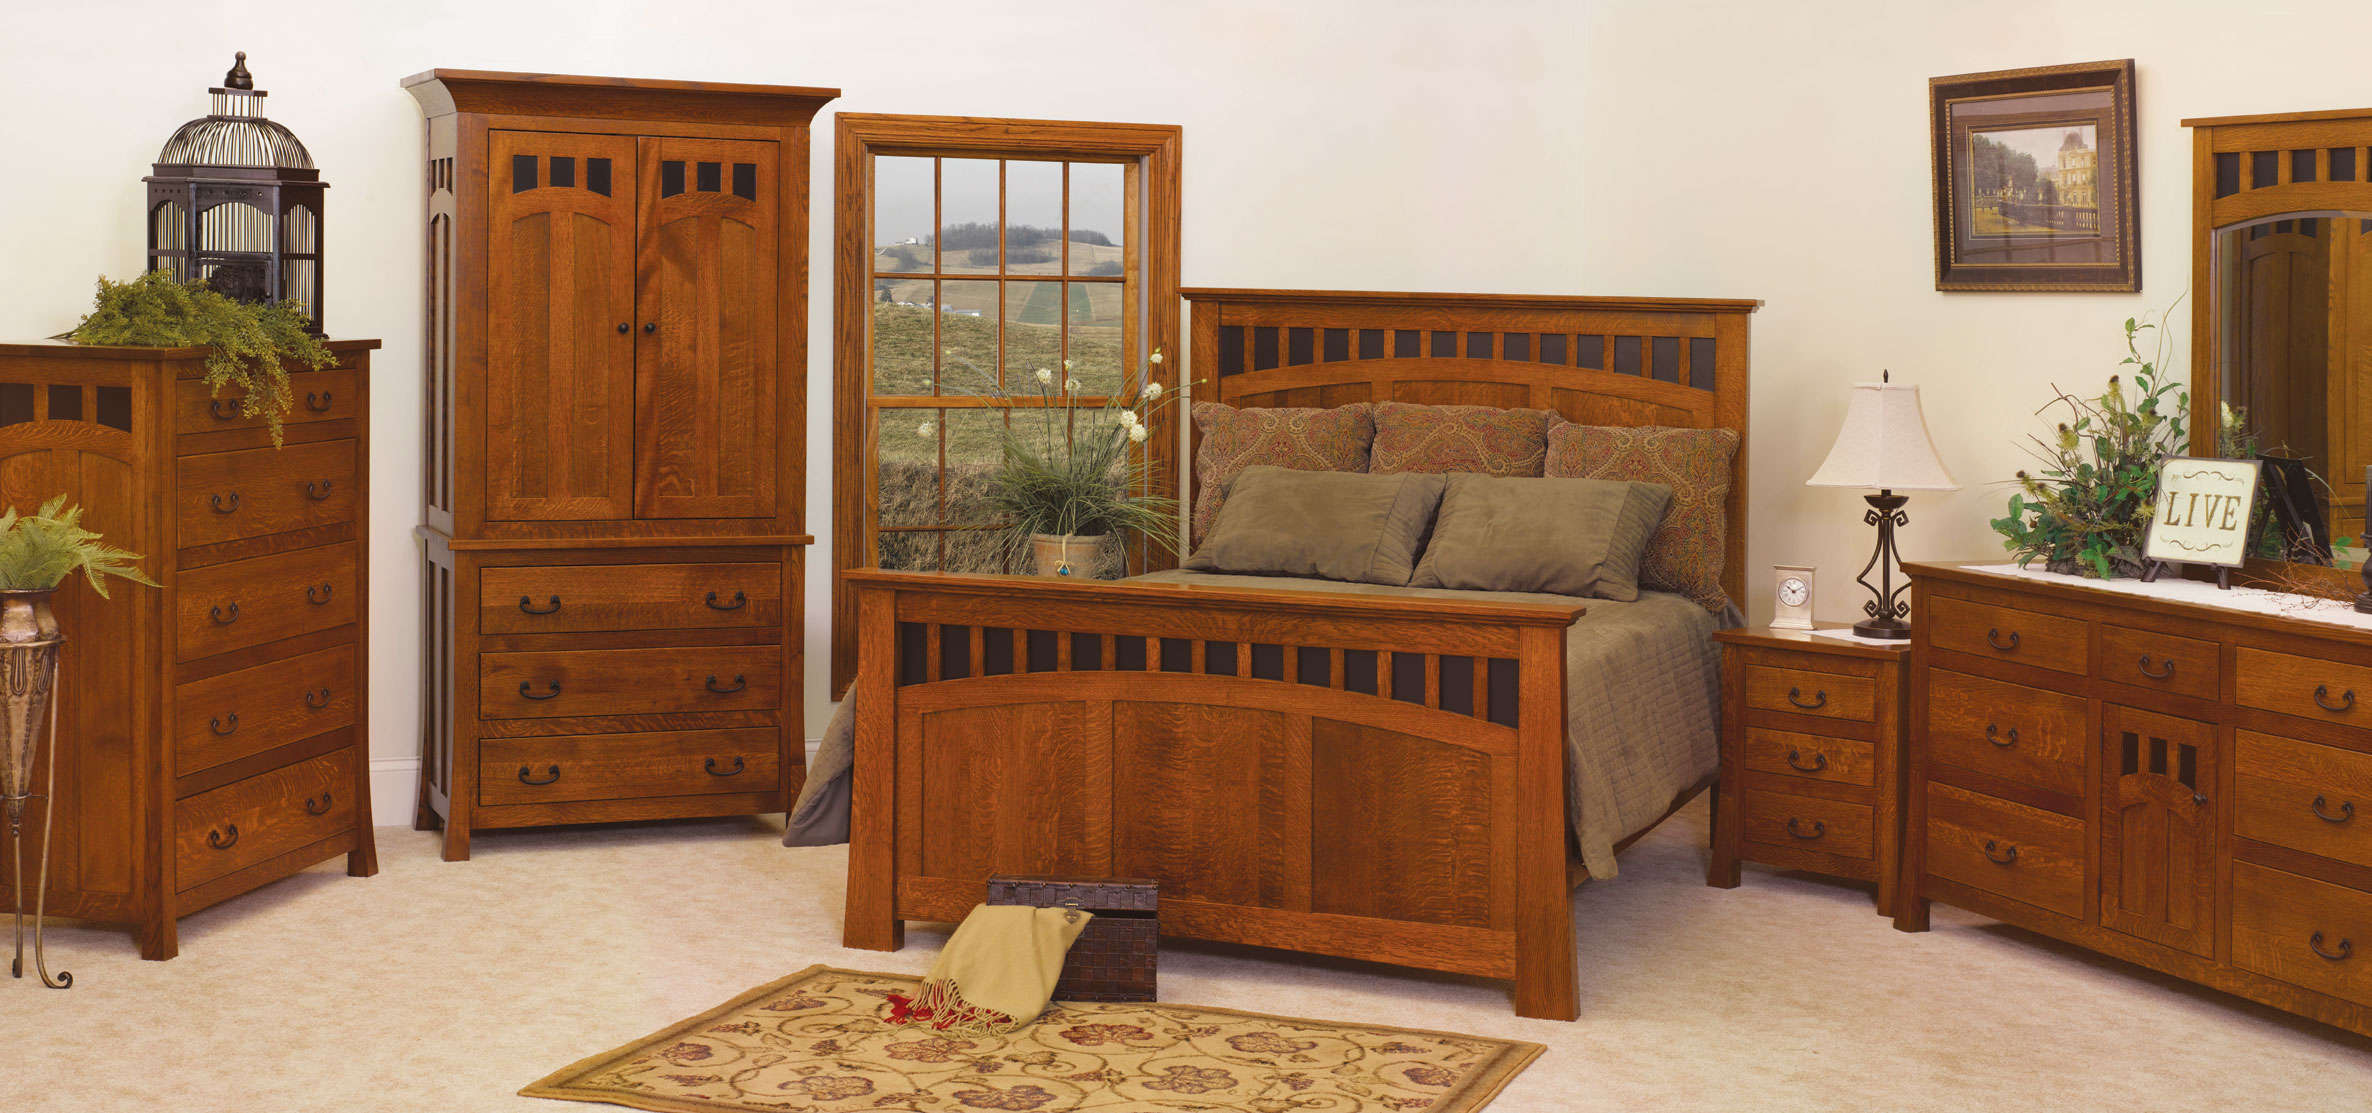 thing to know about best wooden furniture - tcg kfjifnj BCBSAZO